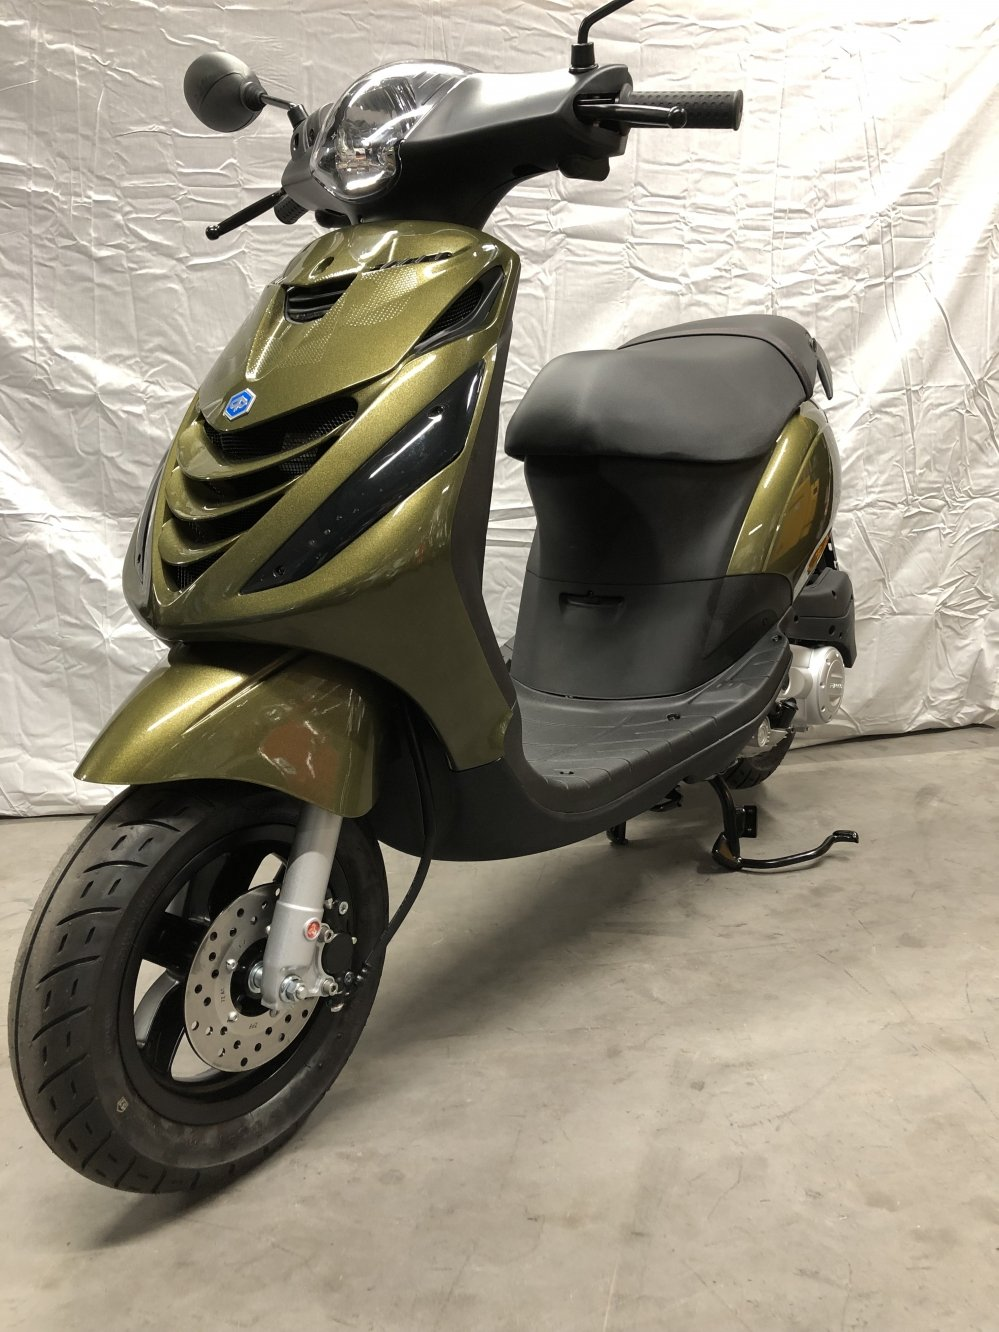 tensen-tweewielers-westland-scooter-winkel-shop-dealer-van-piaggio-kymco-vespa-tomos-emco-post-nl-scootertransport-opslag-magazijn-betrouwbaar-werkplaats